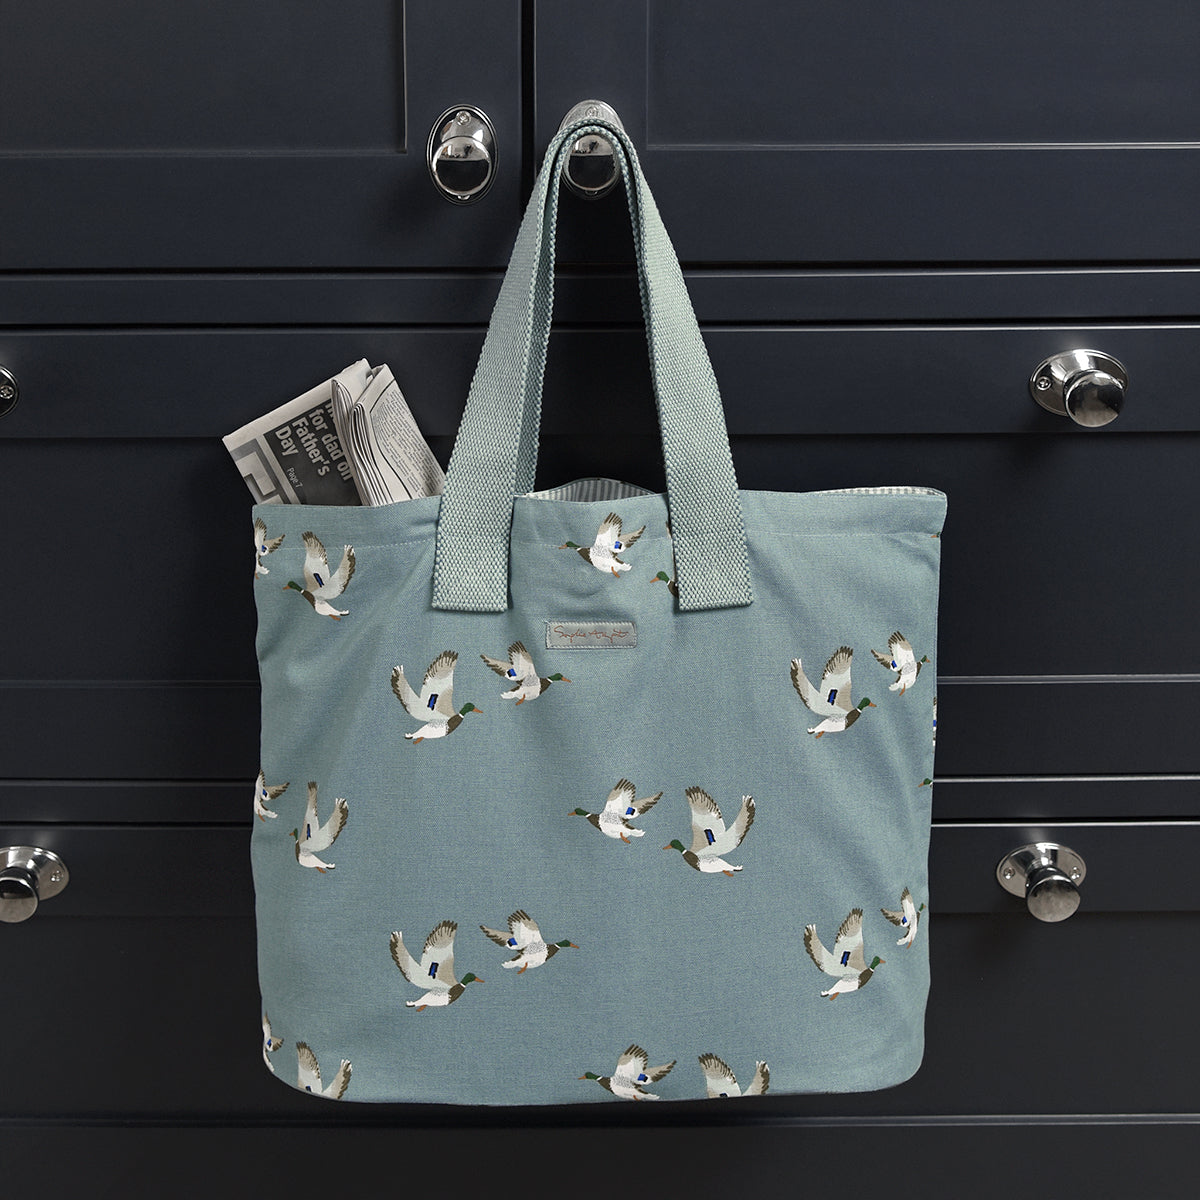 Ducks Everyday Bag by Sophie Allport